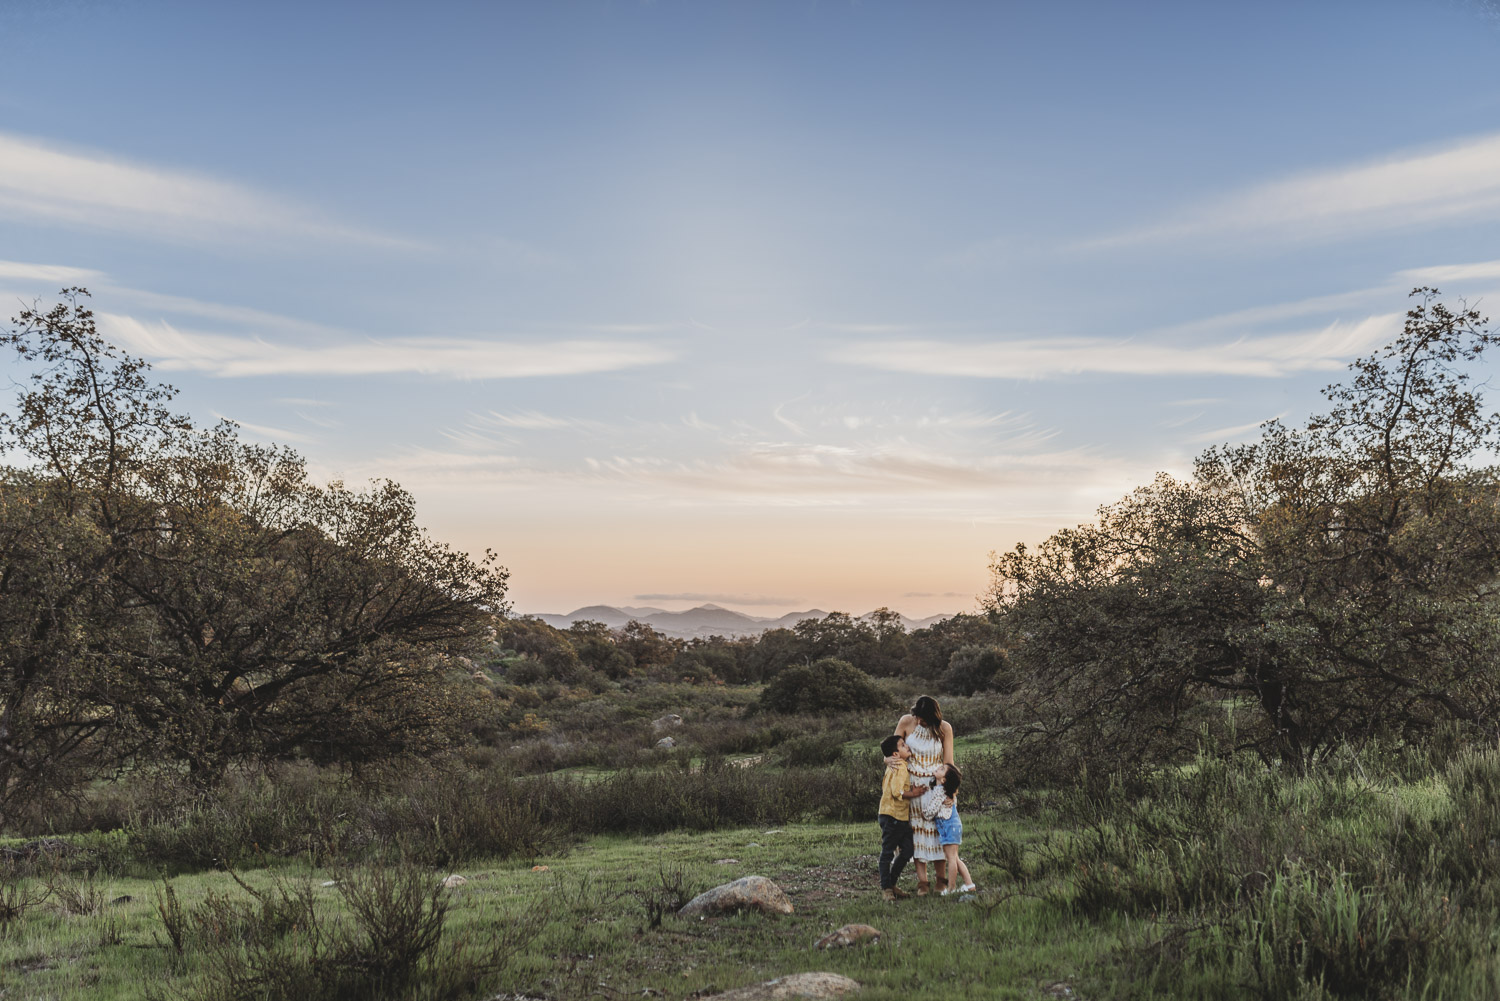 sandiego_family_photography_beach_lifestyle_natural_emotive-7.jpg